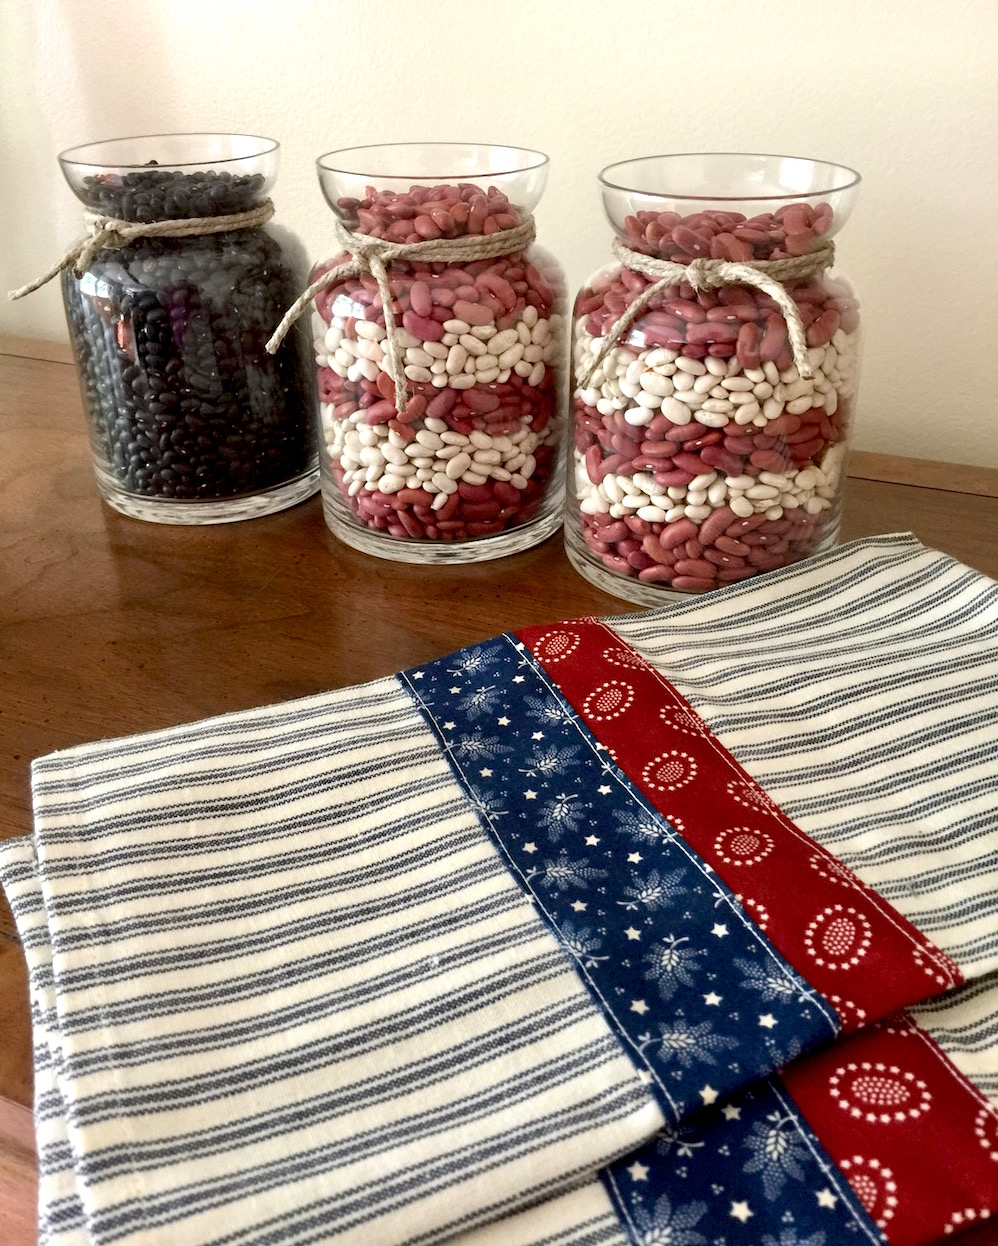 Superior I Also Made Super Fast Hand Towels For The Kitchen To Go With The Americana  Style Decorations.